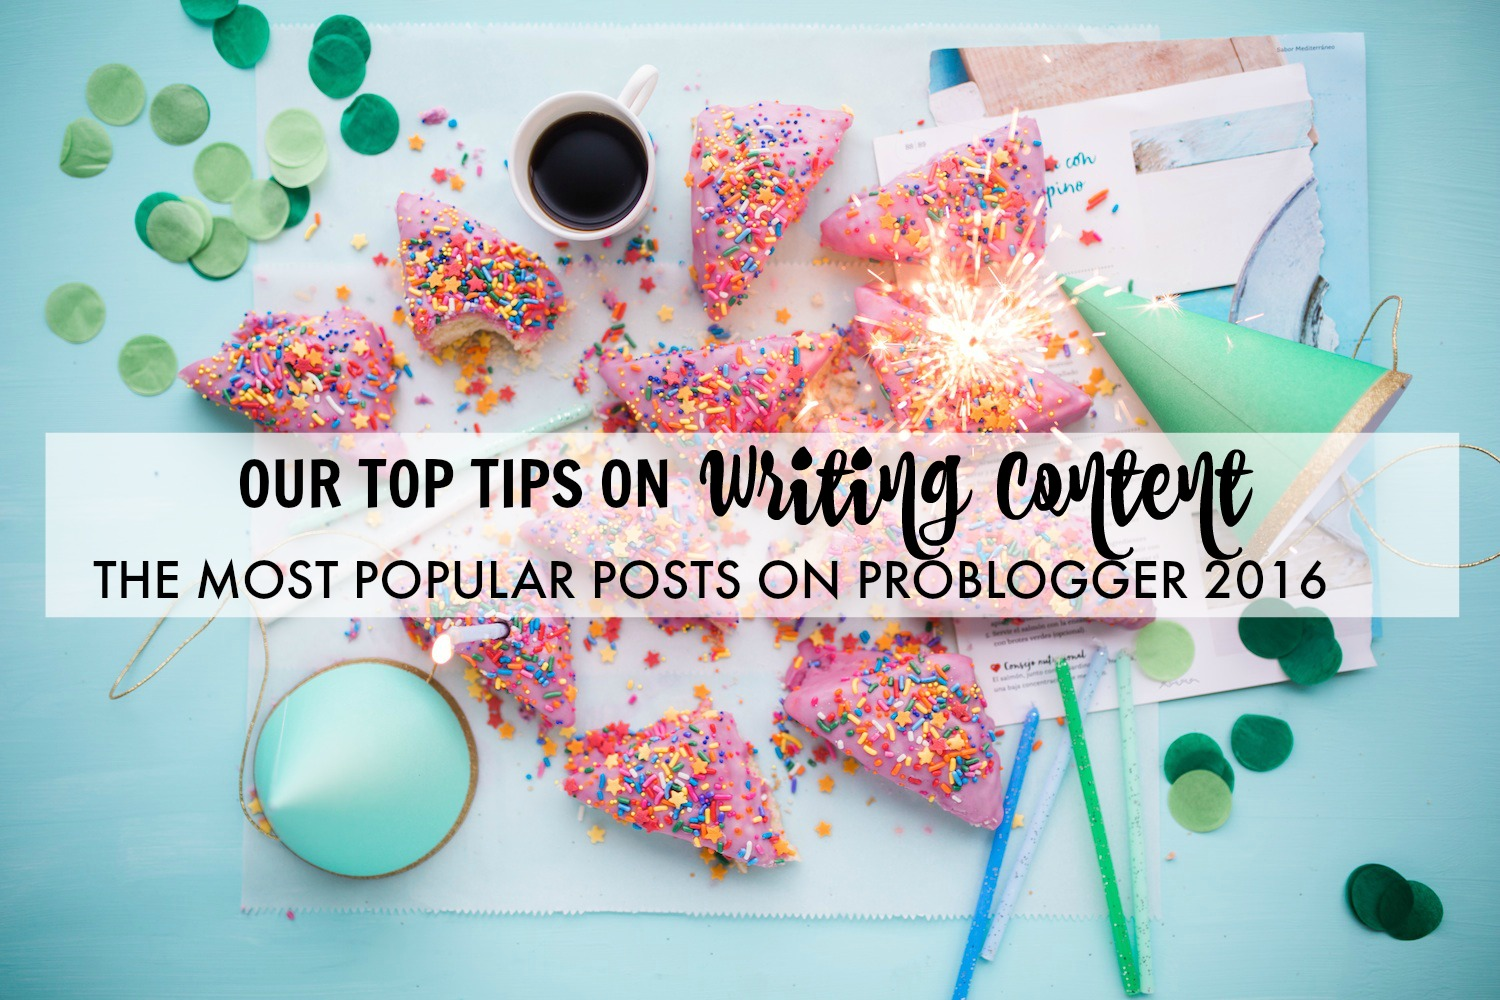 problogger-most-popular-content